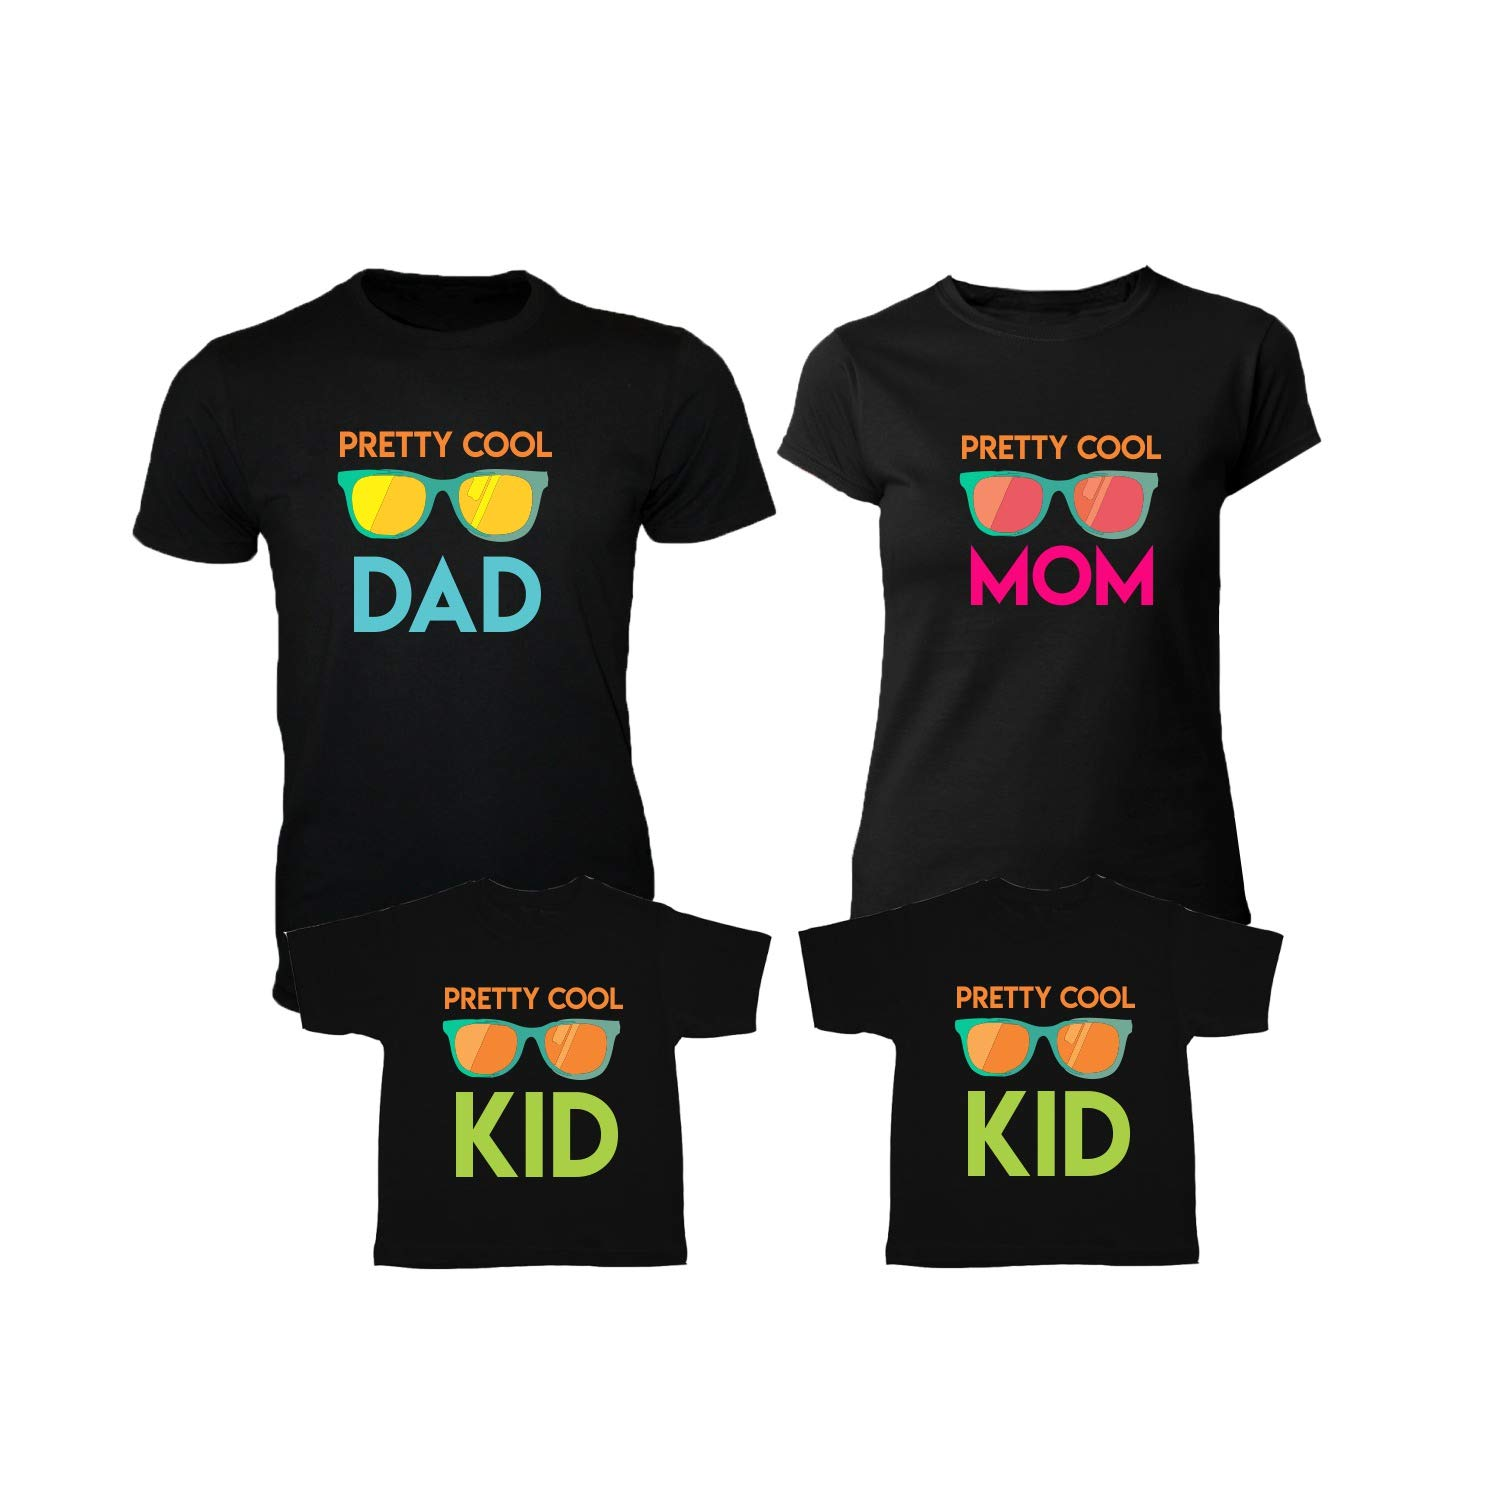 40b37b69 YaYa cafe Cool Matching Family T-Shirts for Mom, Dad and 2 Kids Set of 4 -  Black: Amazon.in: Clothing & Accessories